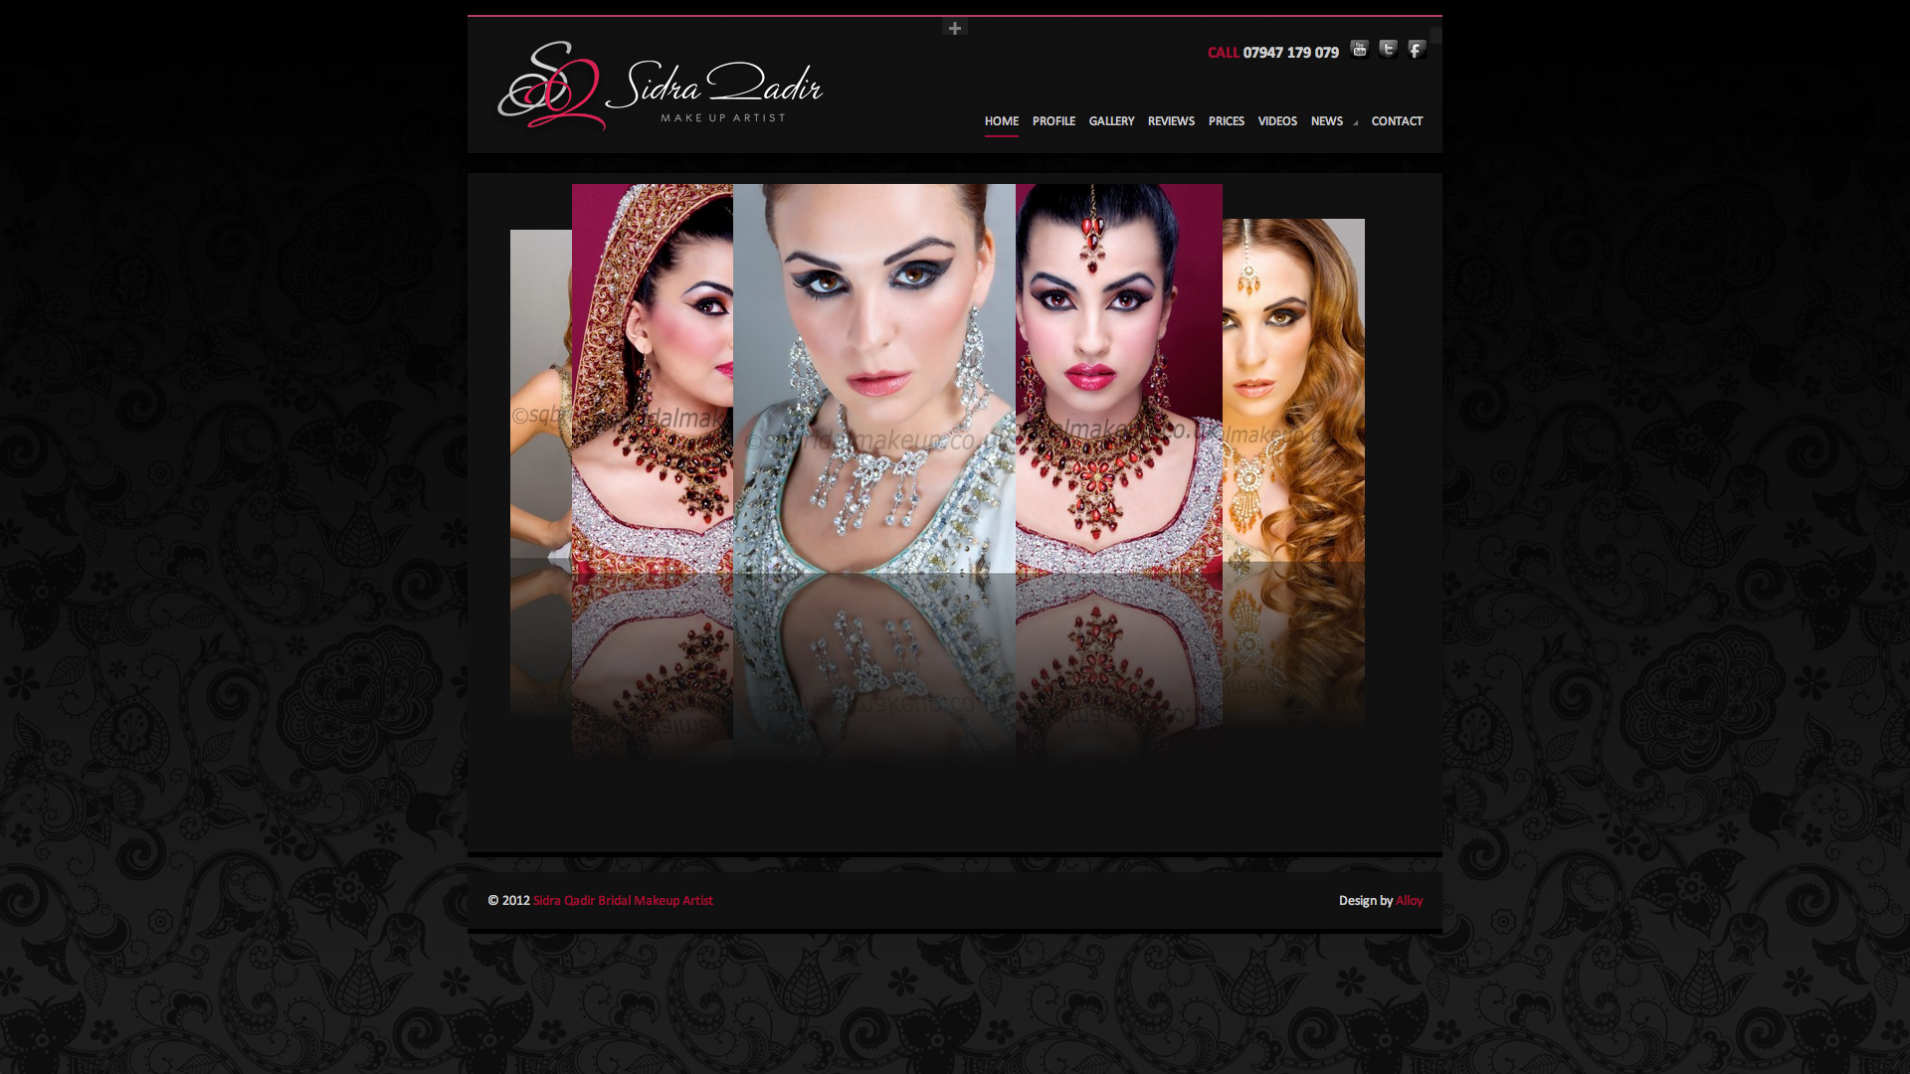 Screen Shot 2013 12 23 at 16.34.47 - Website design for professional UK Makeup artist